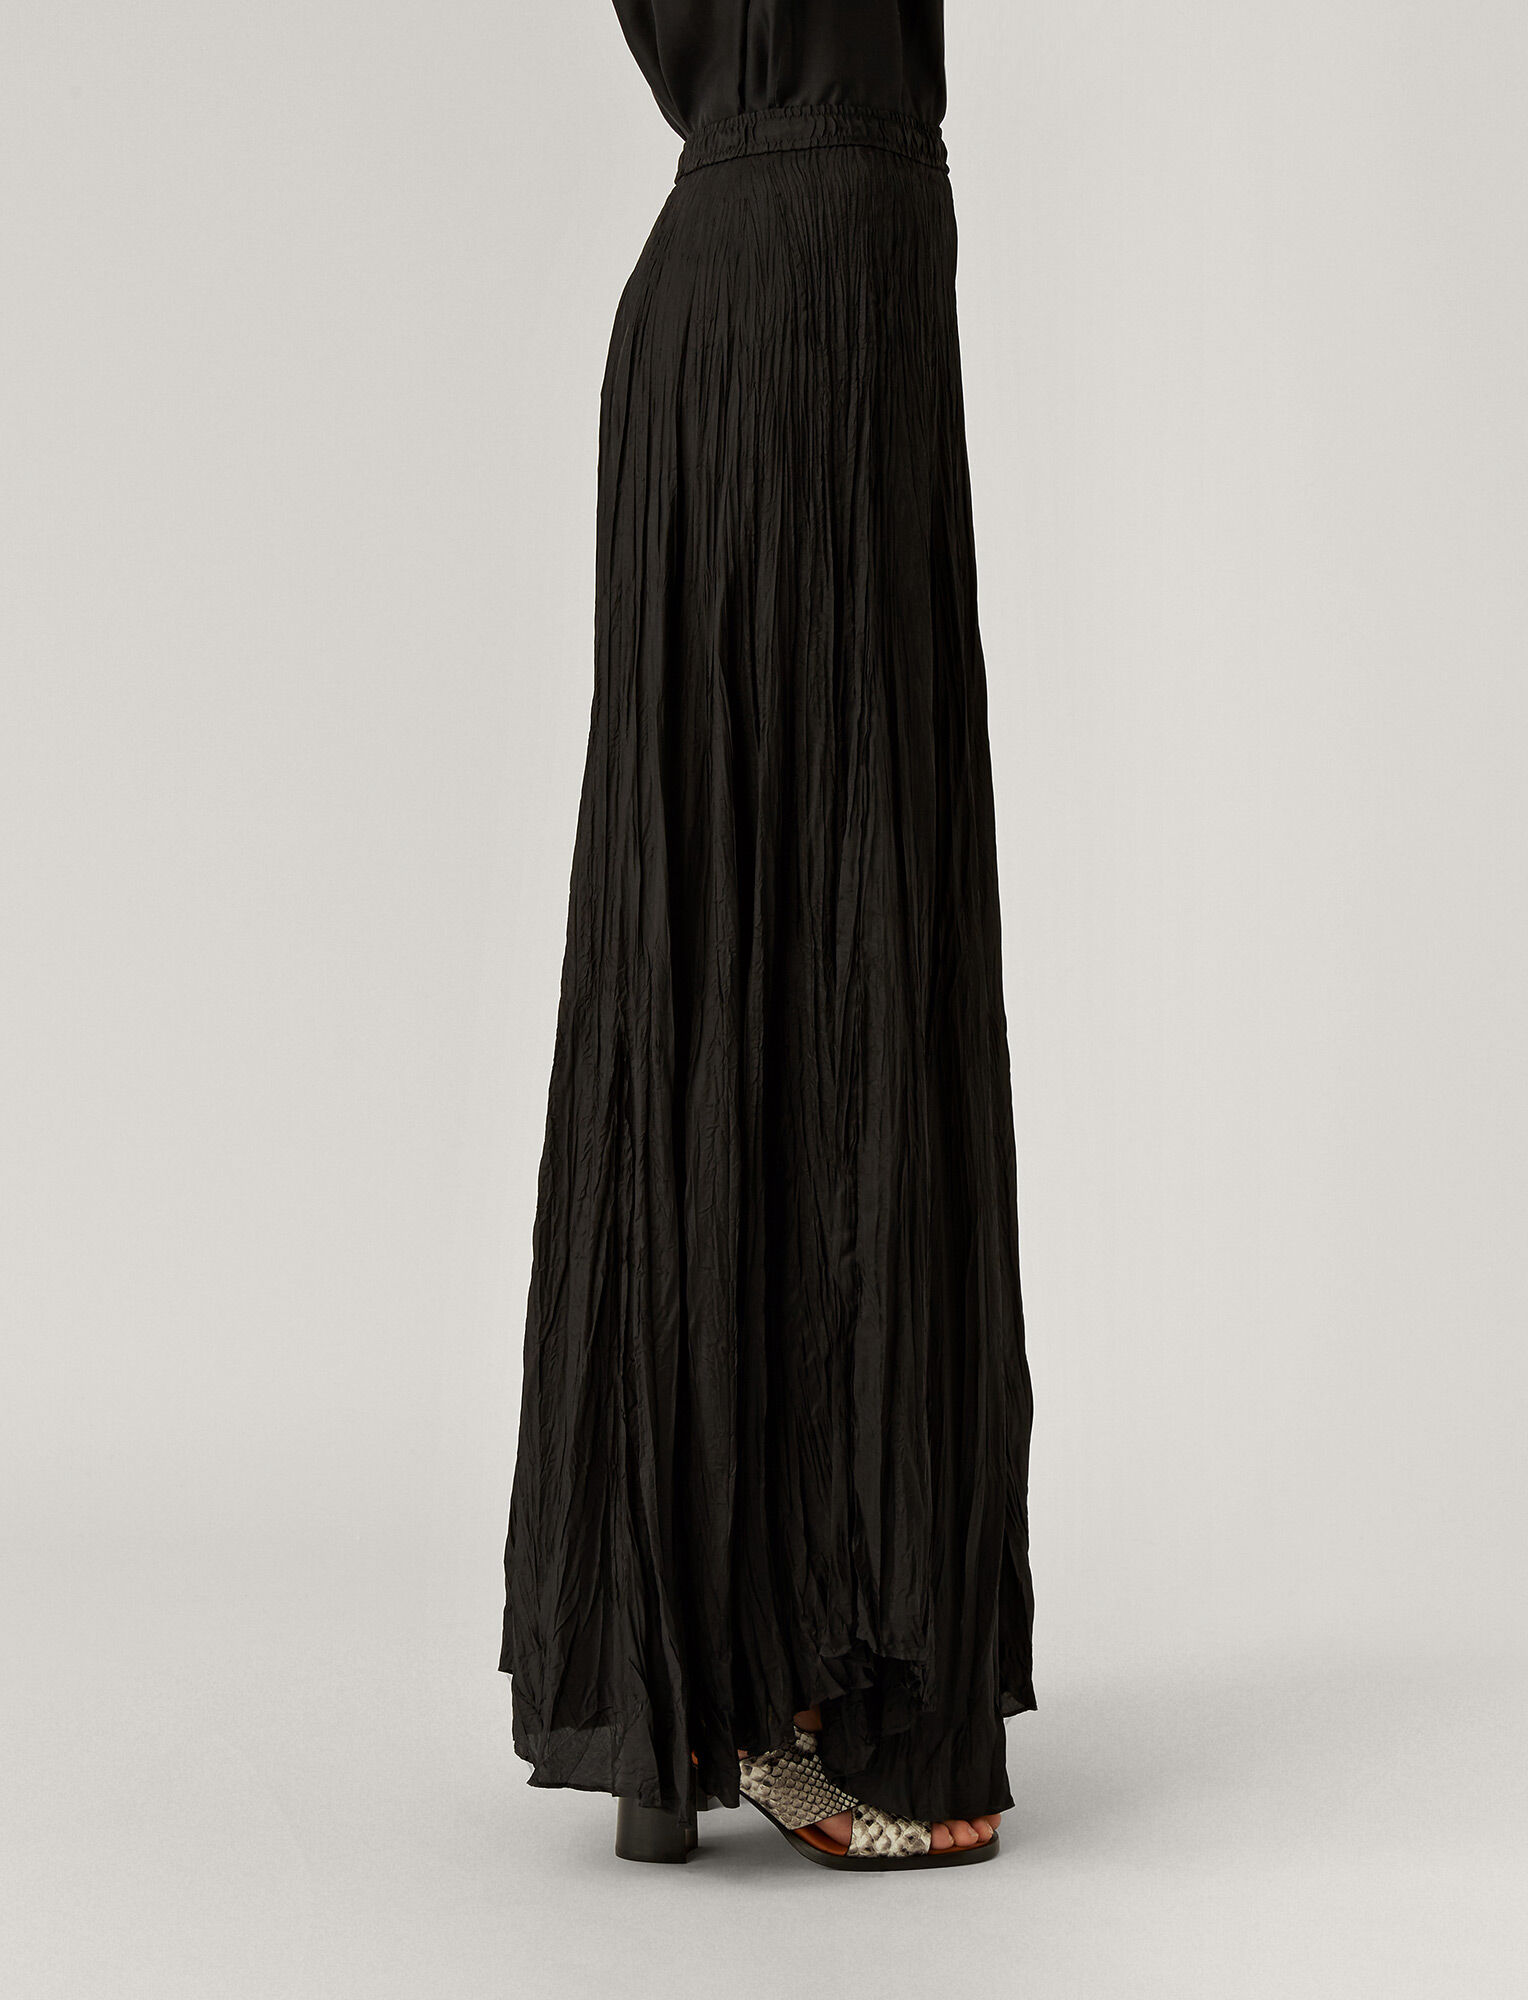 Joseph, Nanco Silk Habotai Skirt, in BLACK